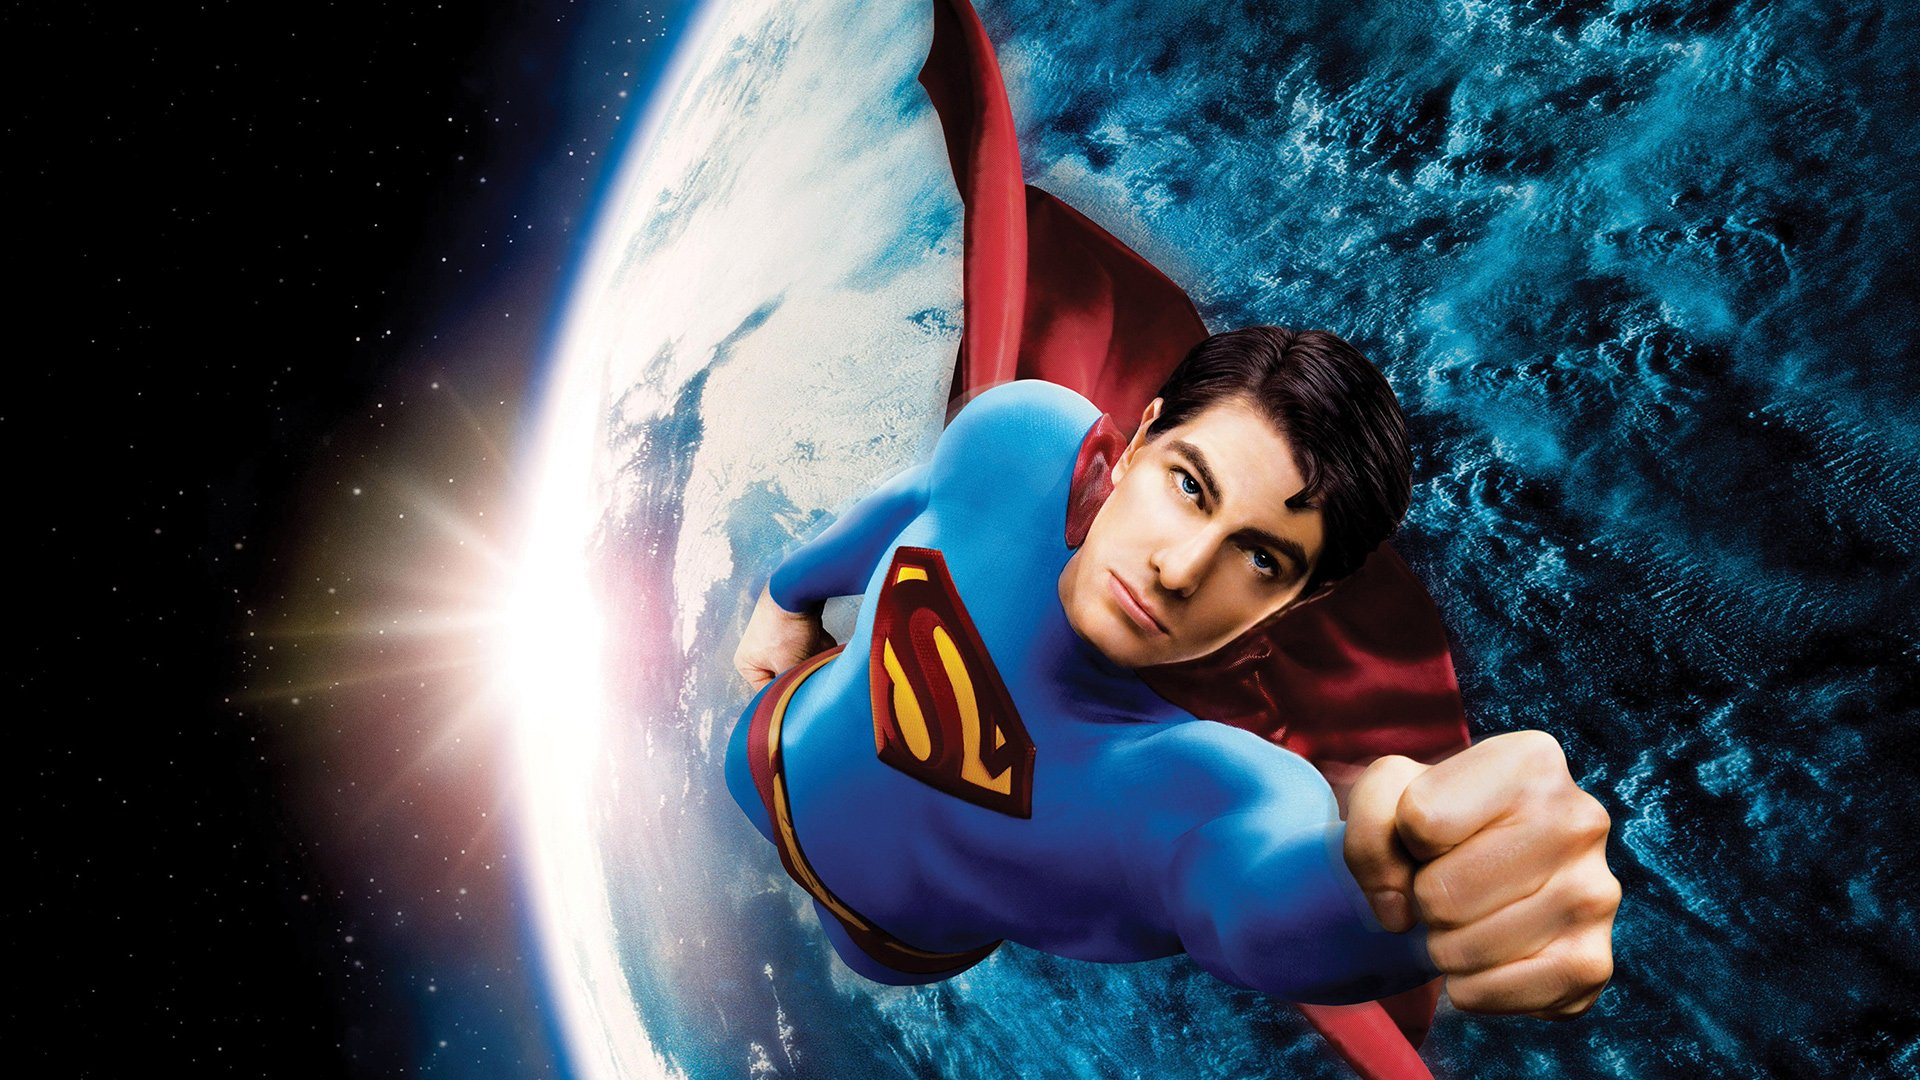 superman returns hd wallpaper background image